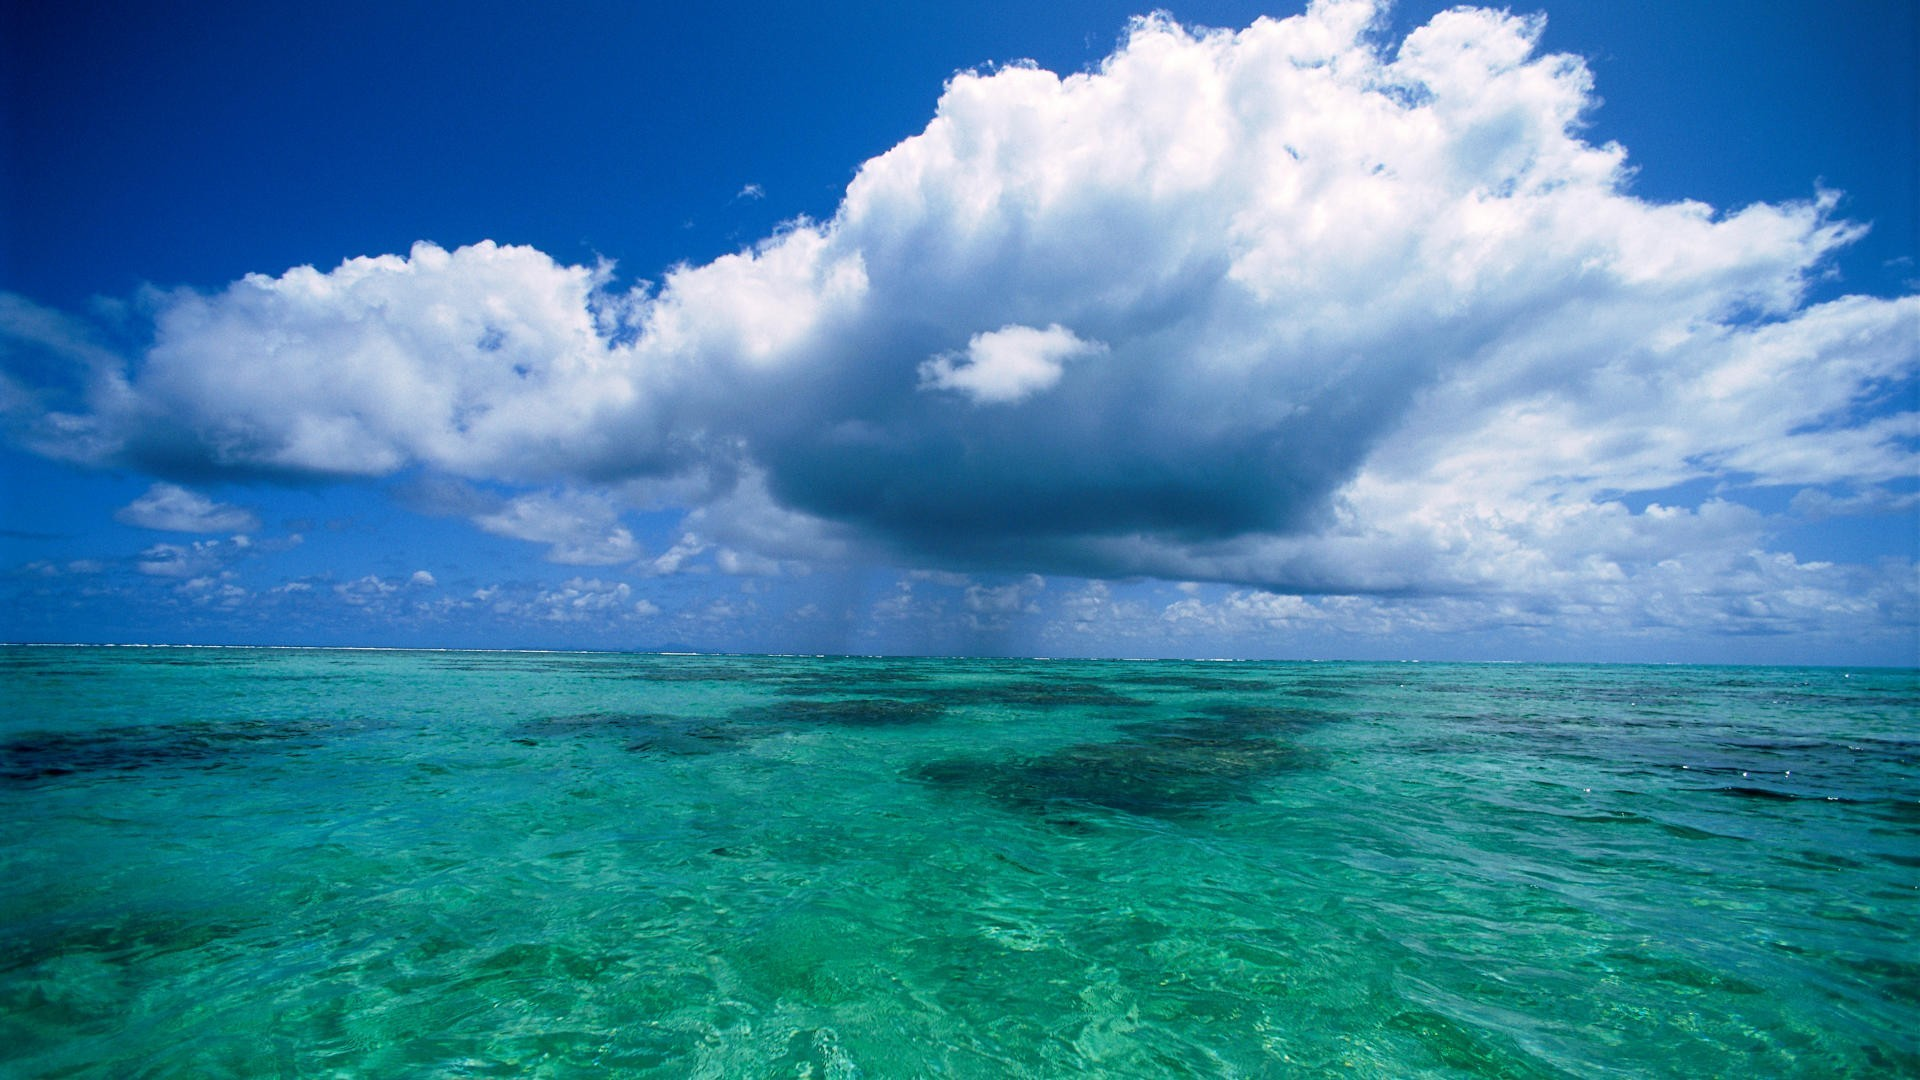 Fluffy clouds over clear ocean